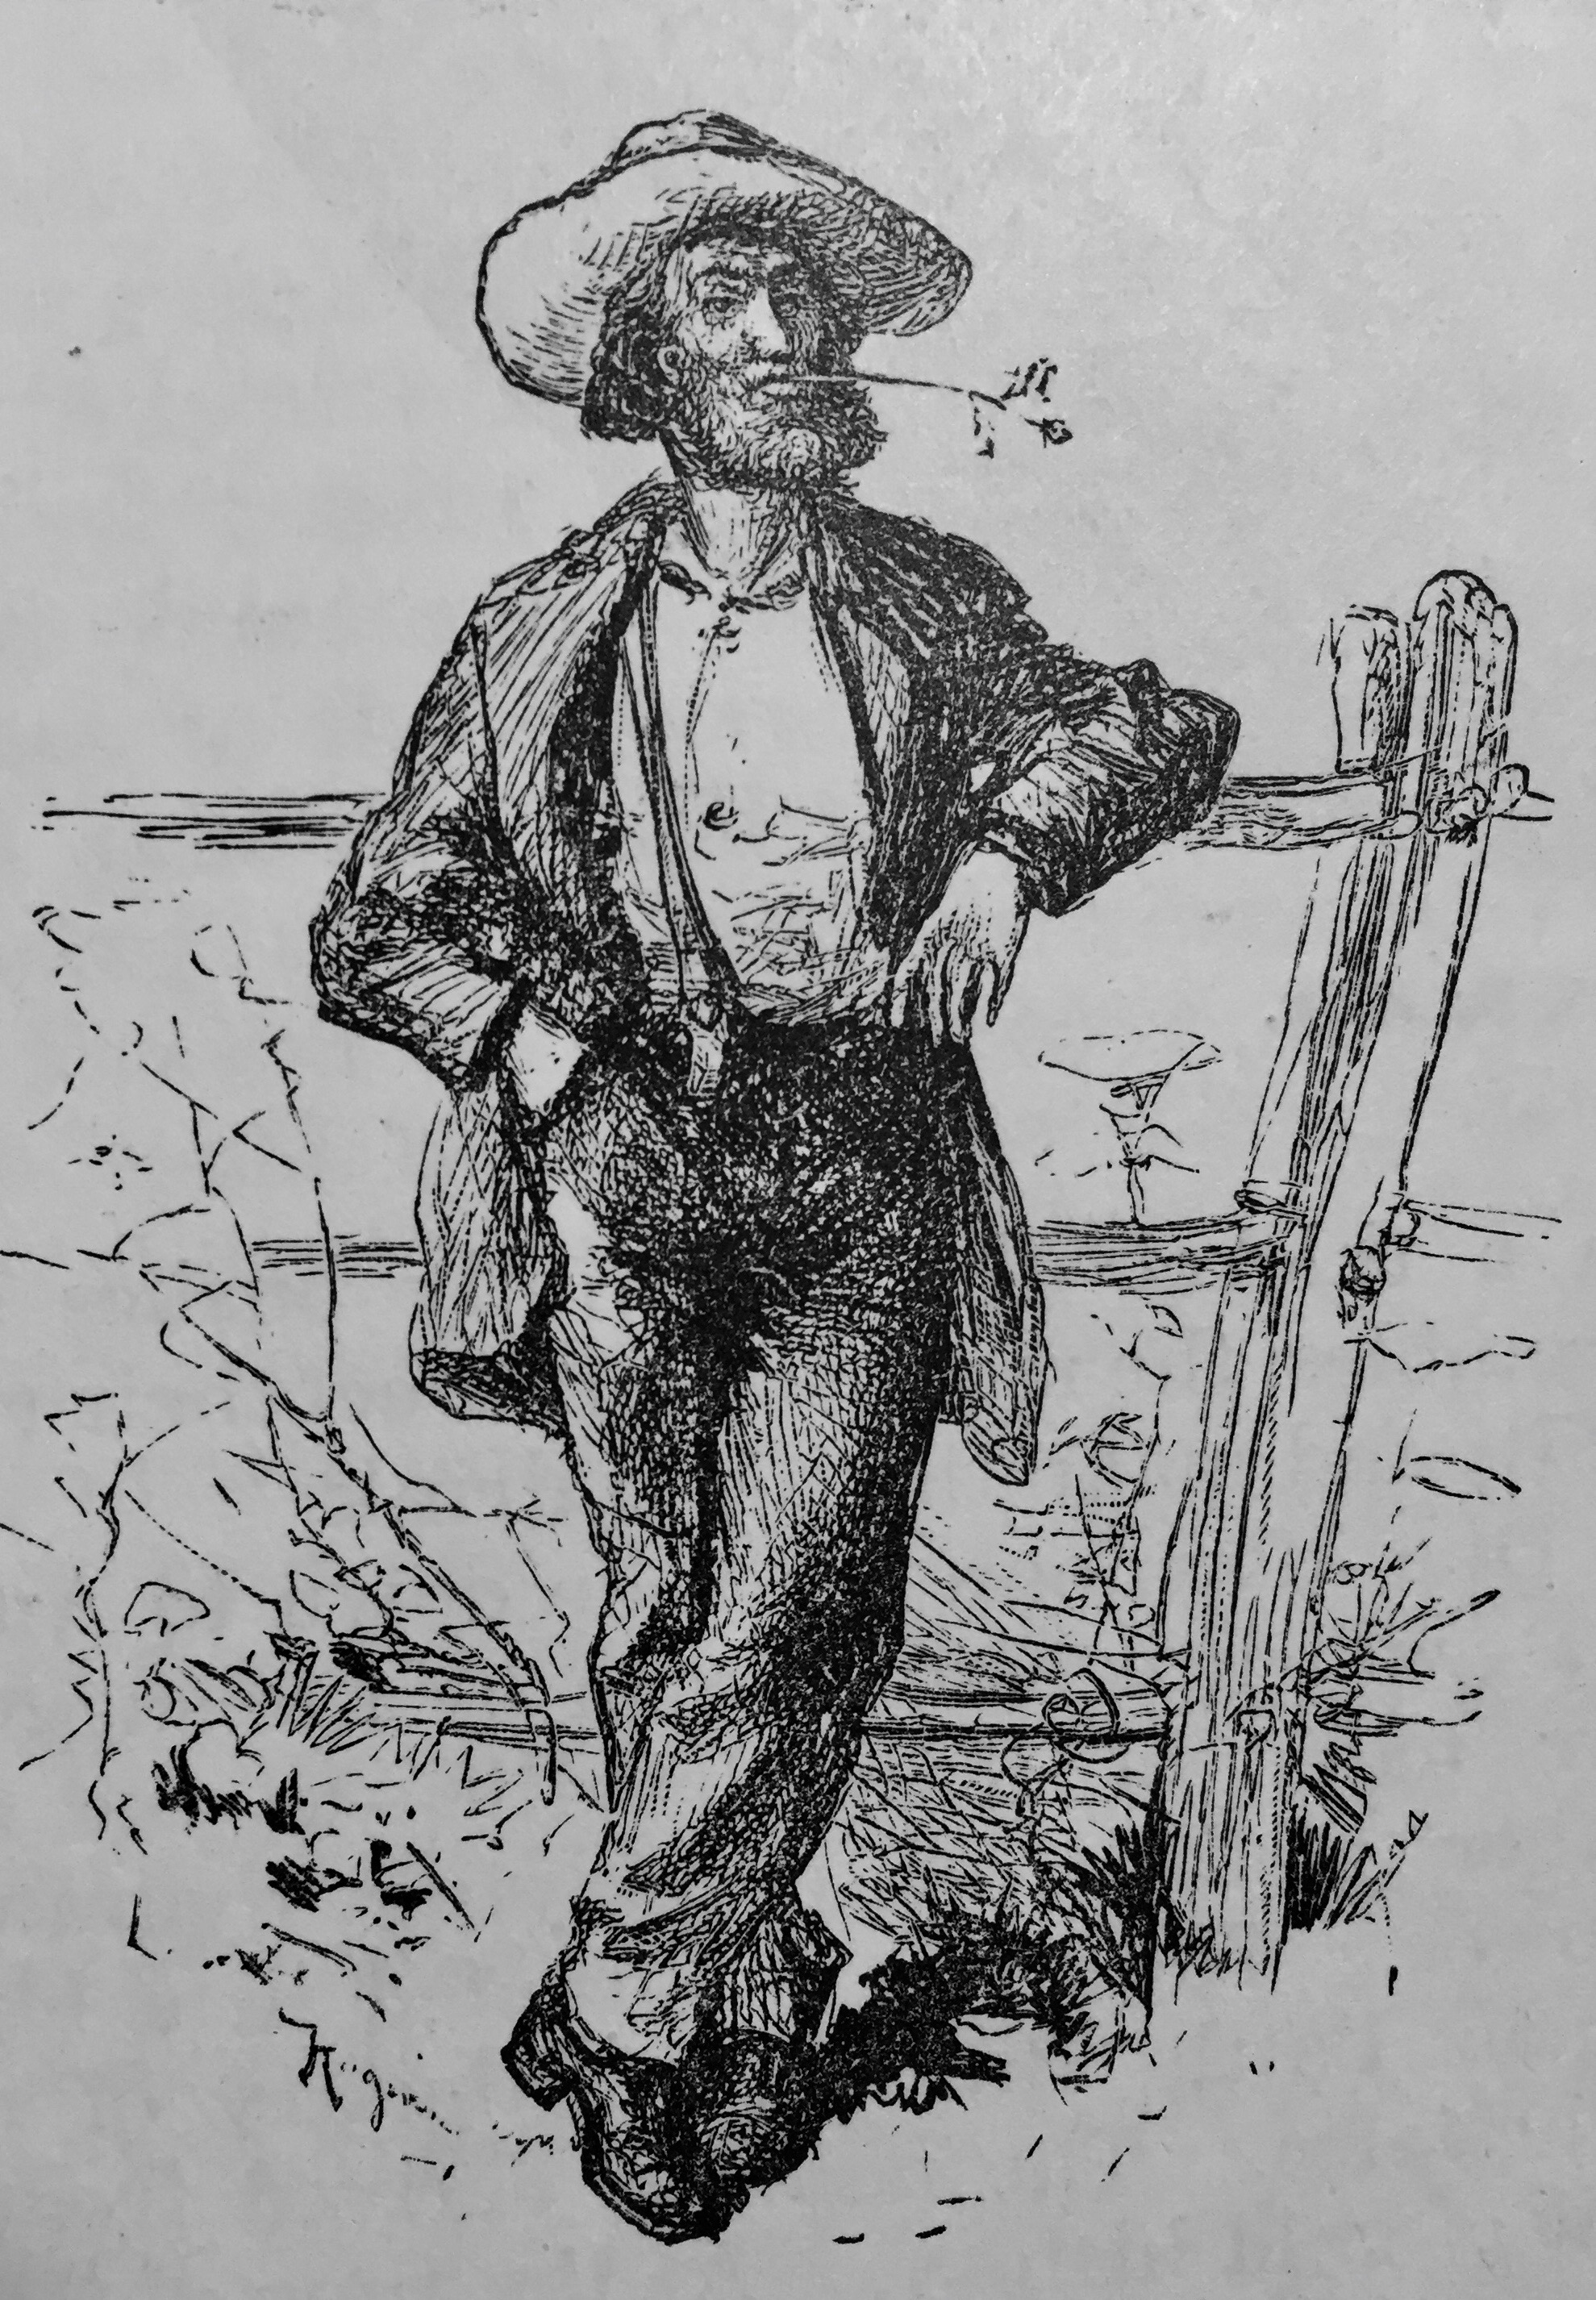 A Georgia Gold Miner in 1879, from an article at the Harper's New Monthly Magazine.